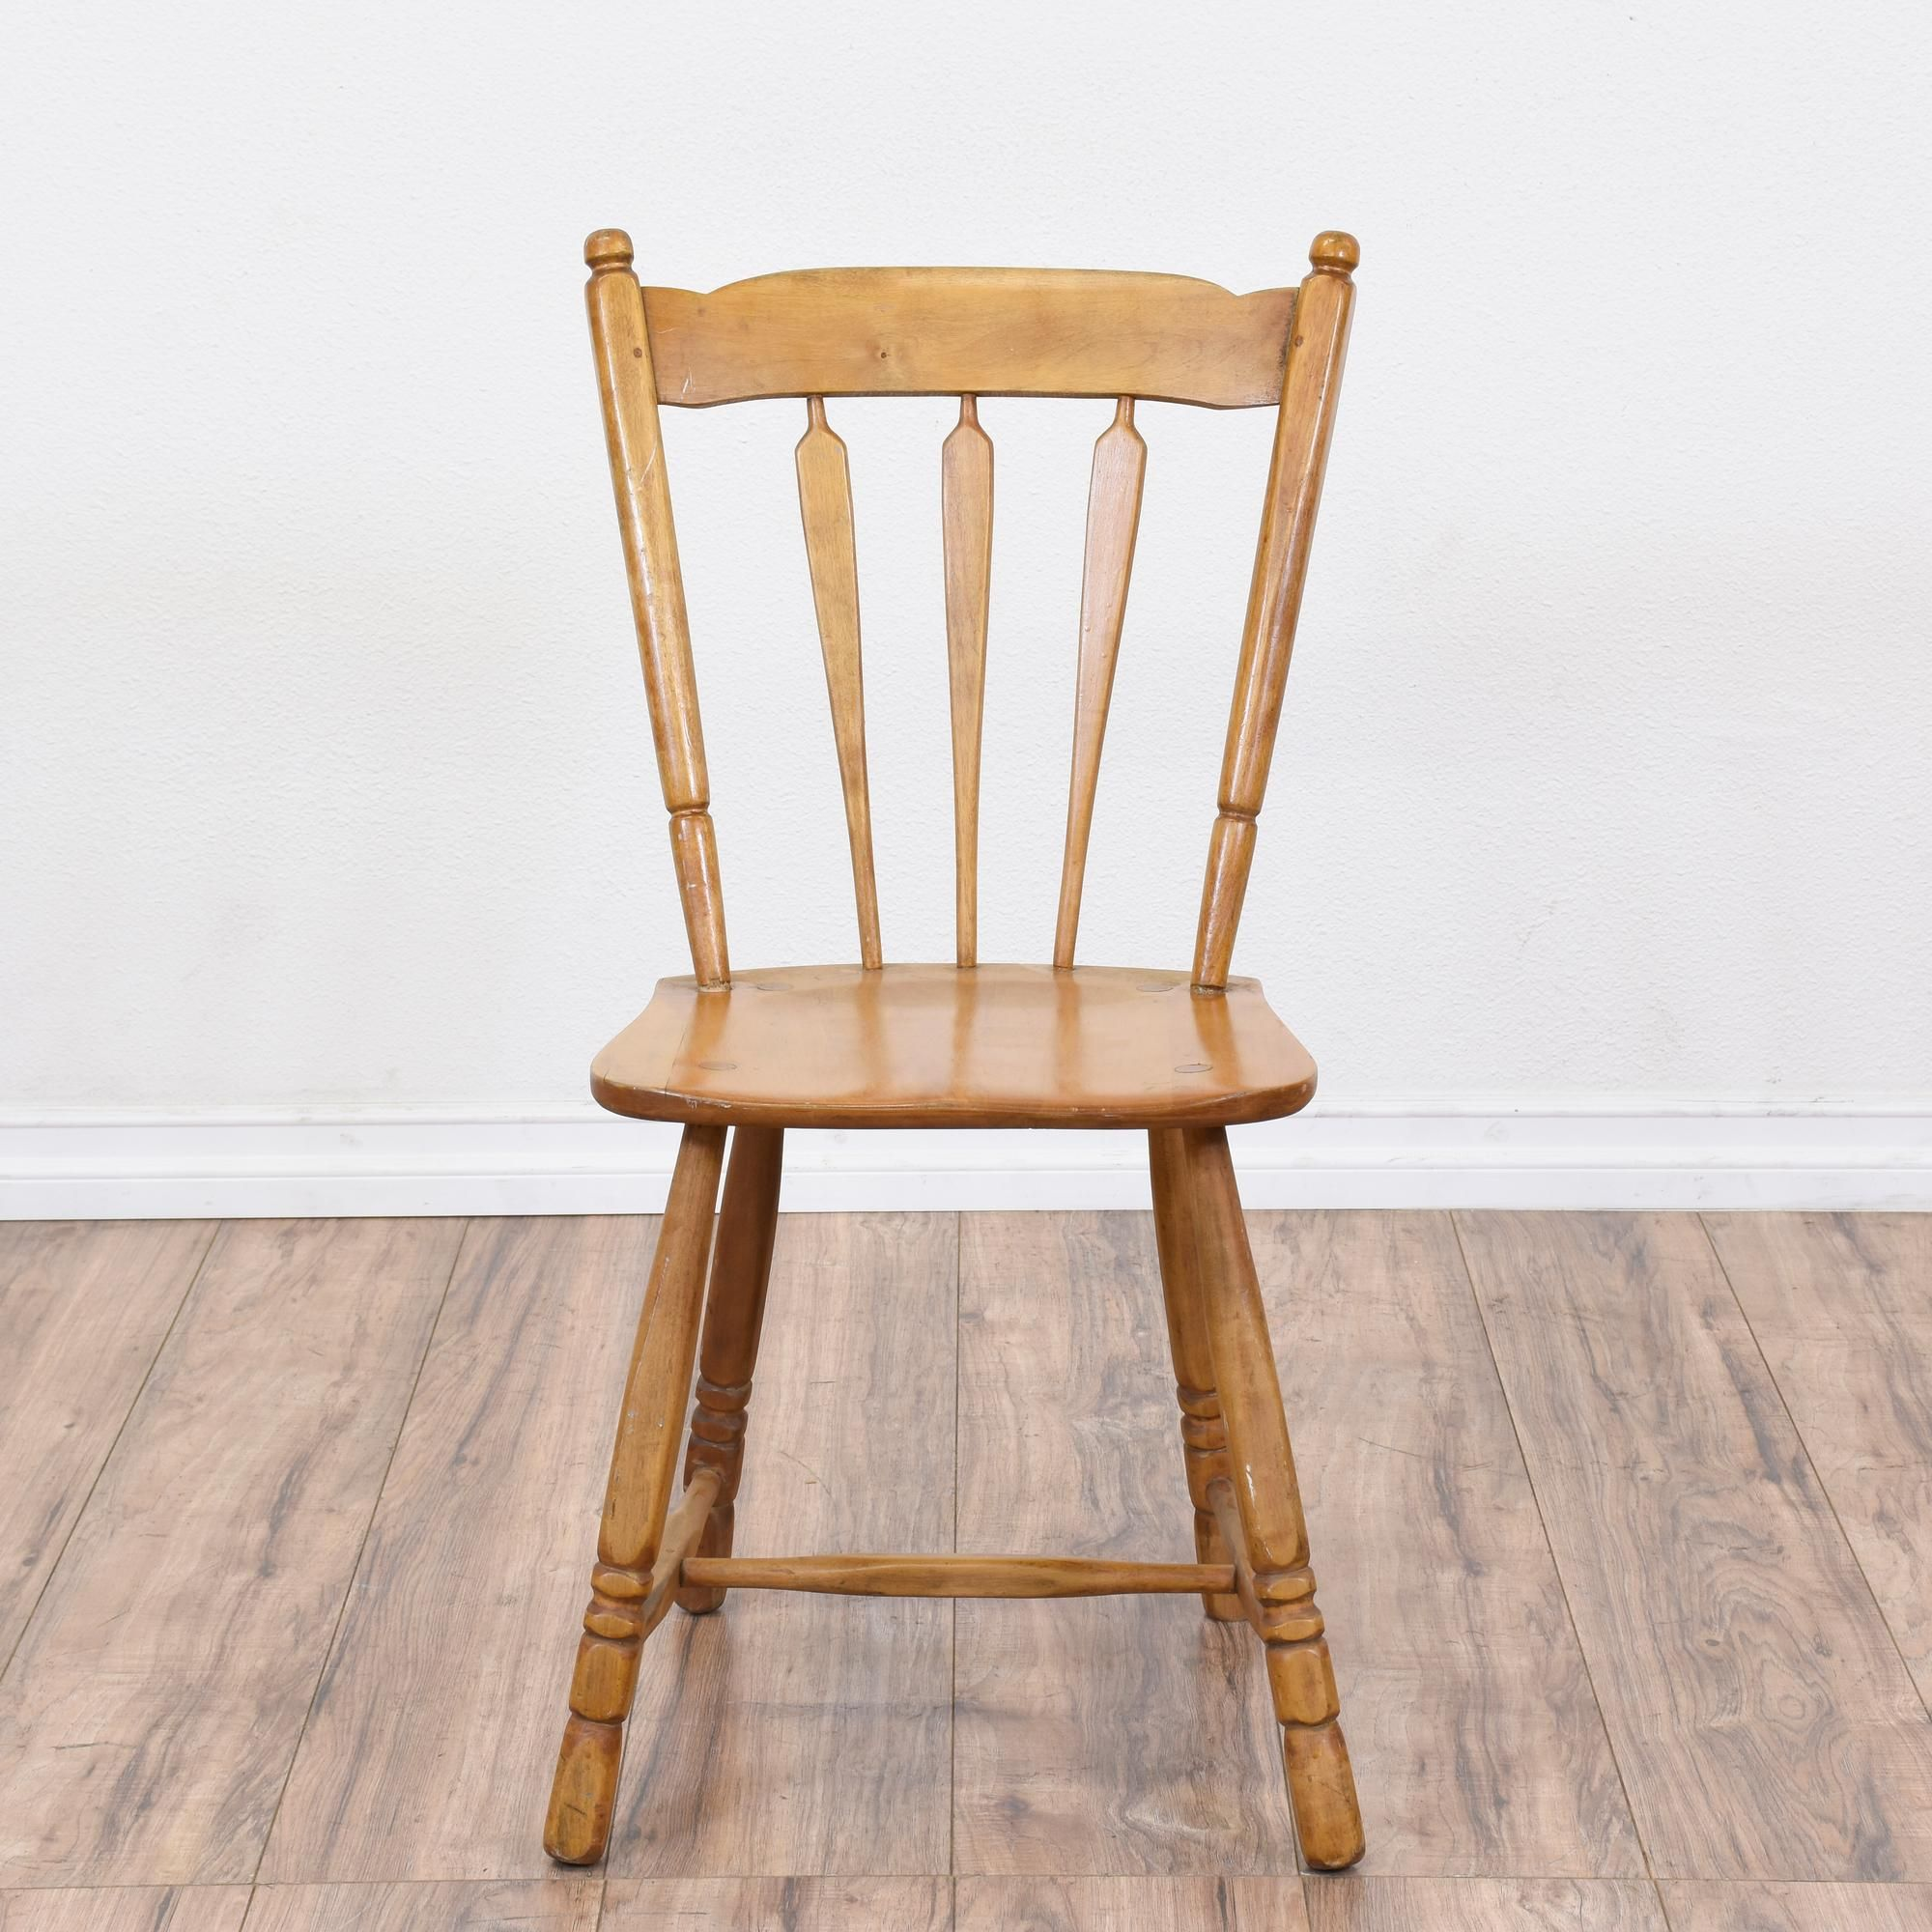 This traditional dining chair is featured in